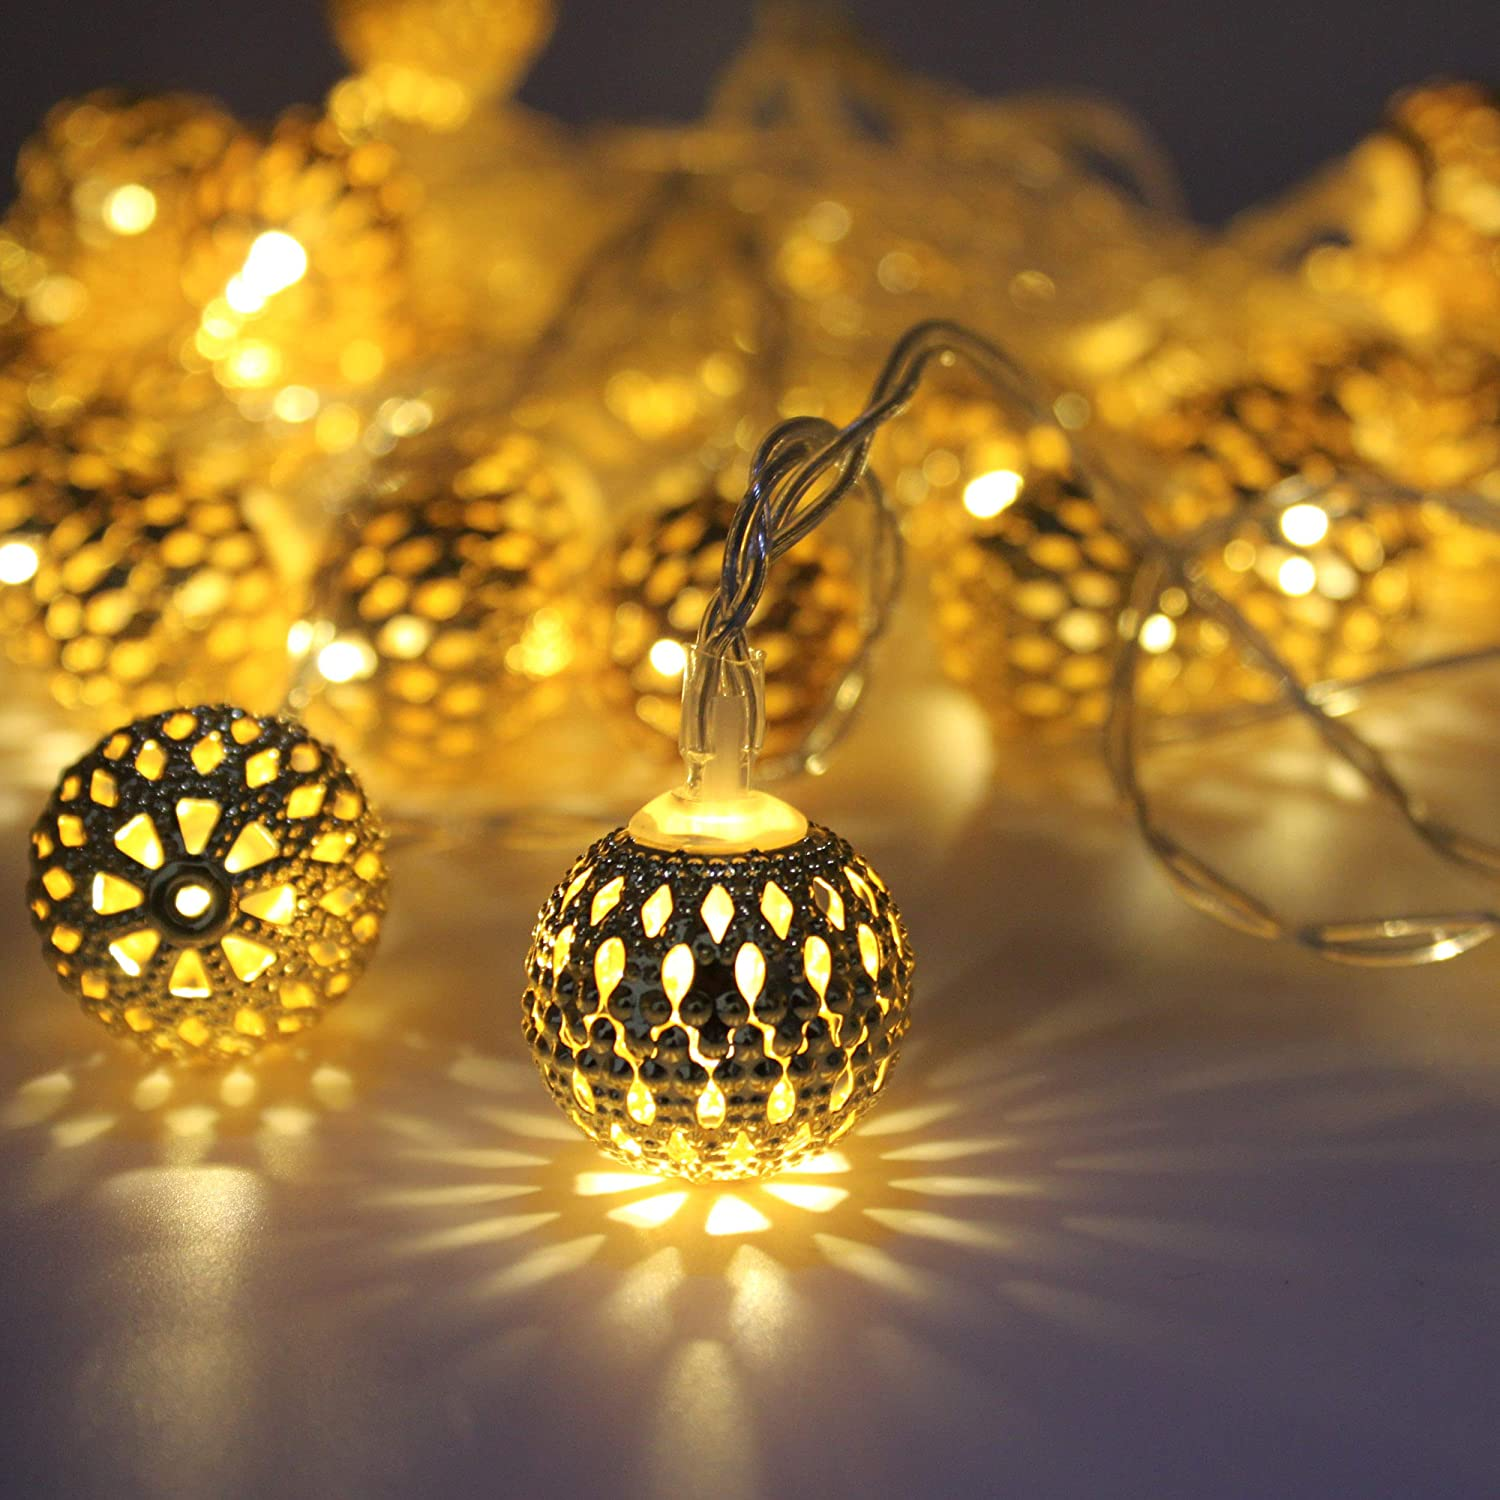 LOUIS CHOICE LED Globe String Lights, Decorative Moroccan Orb, 40 Golden Metal Balls, Bright Warm Light, Battery Powered